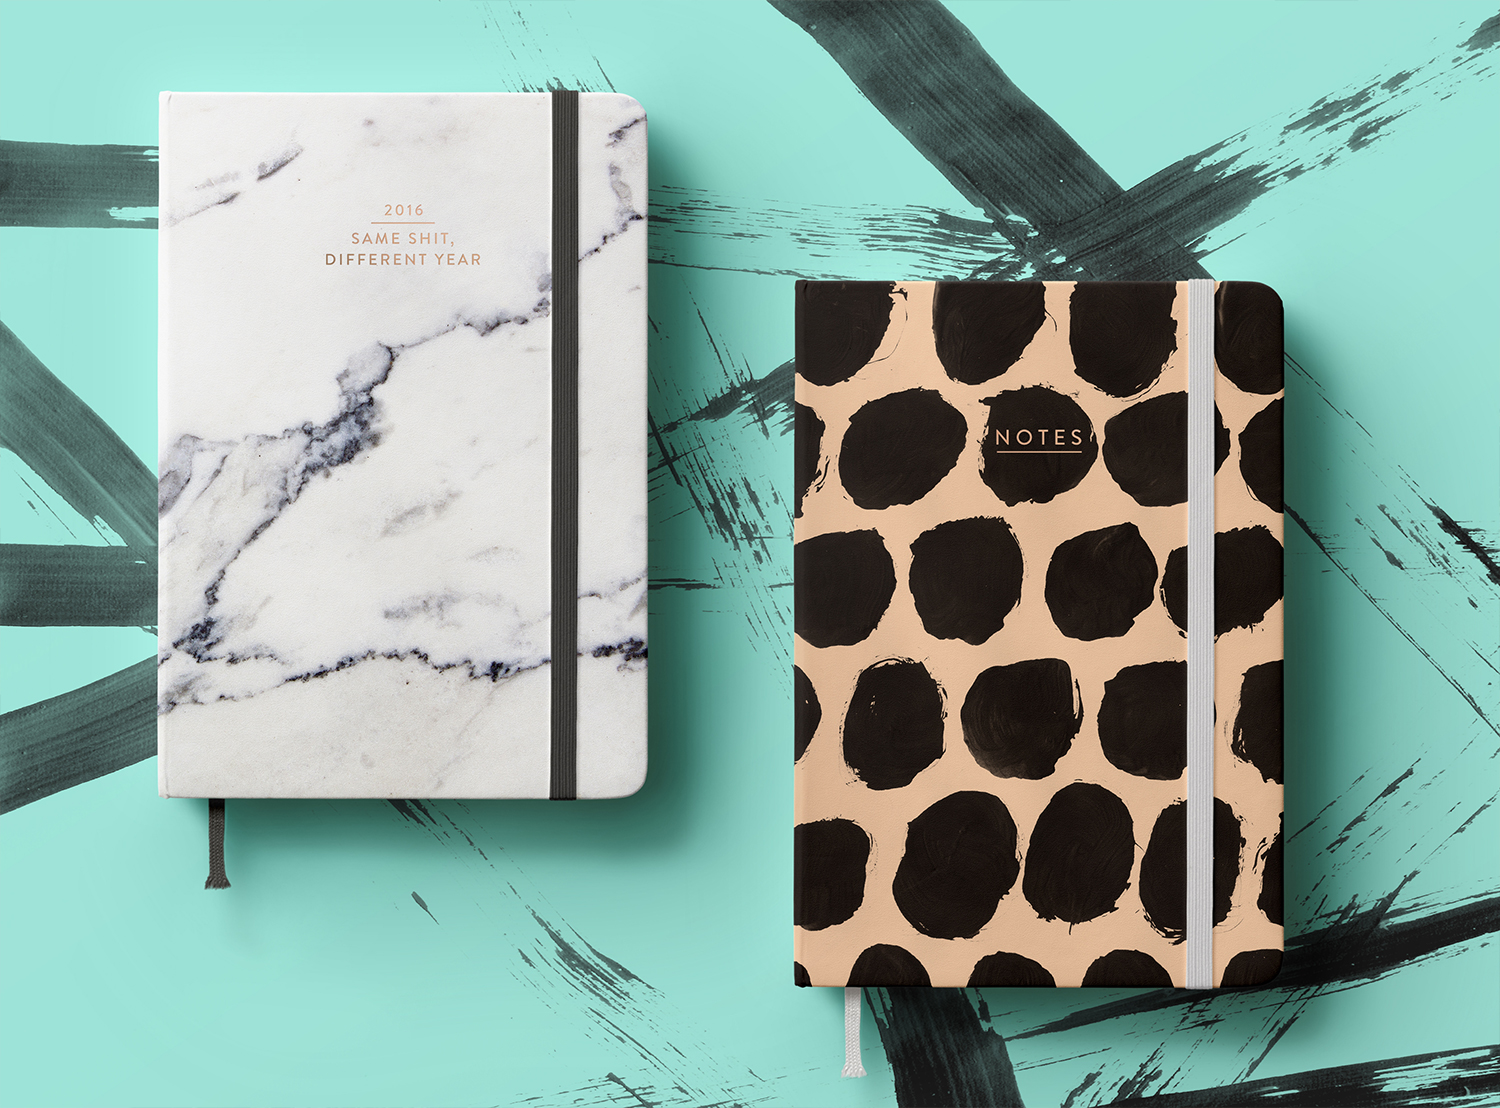 Diary & Notebook / Hand painted pattern litho printed and p  erfect b  ound with c  opper f  oil blocked  t  ype   / 2016